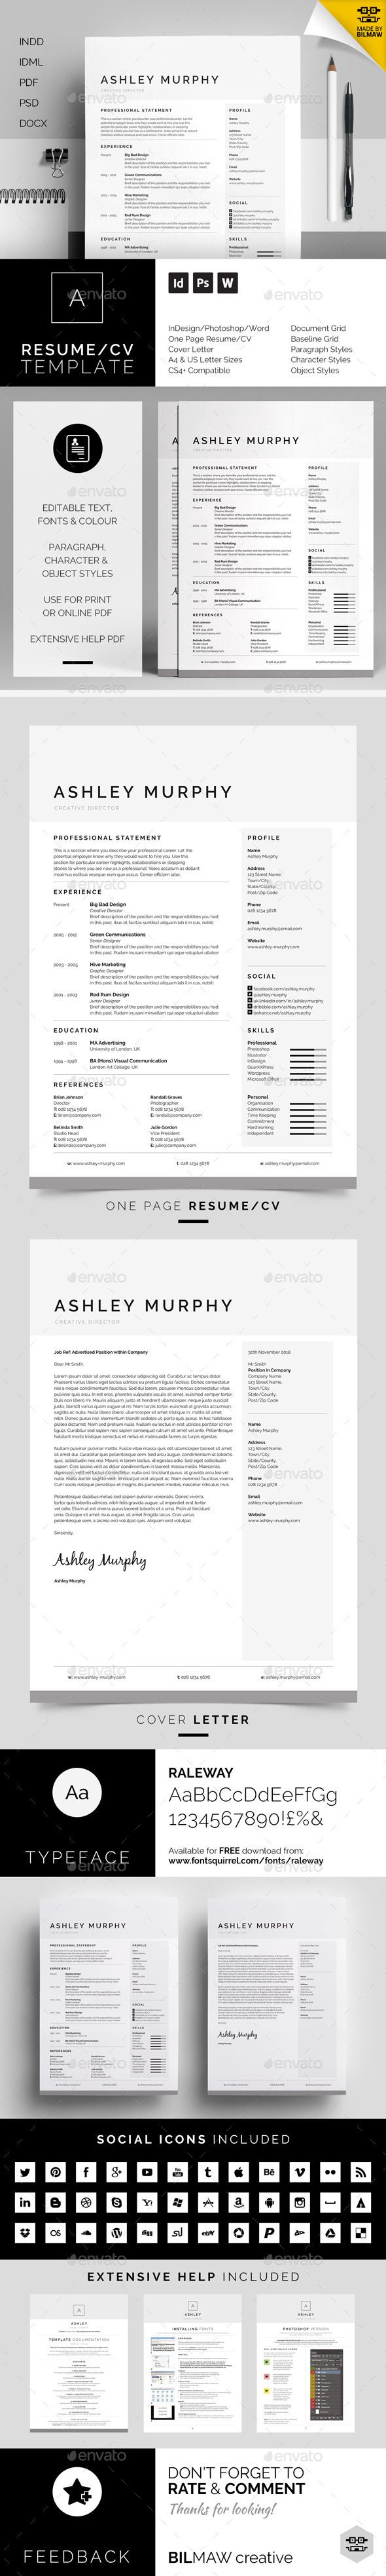 Resume/CV Ashley Design, Cover letter template and